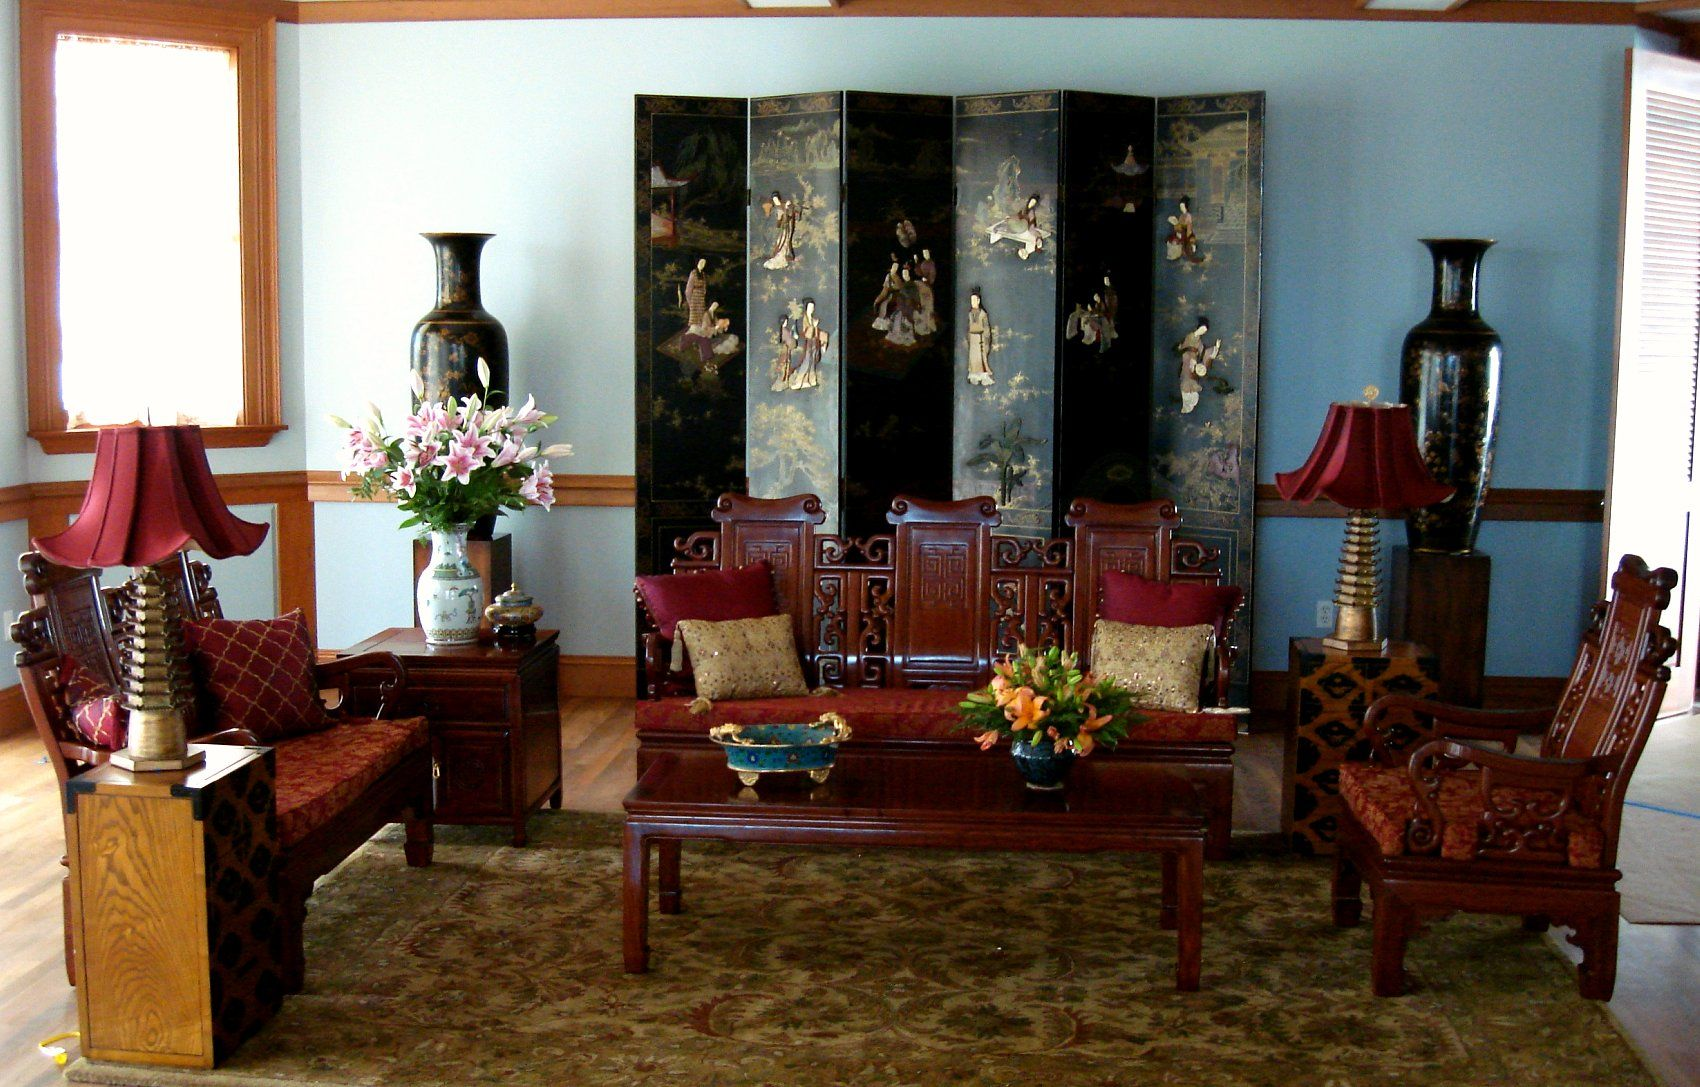 interior design ideas living room other sweet and house decorating | korean traditional house interior design - Google Search ...